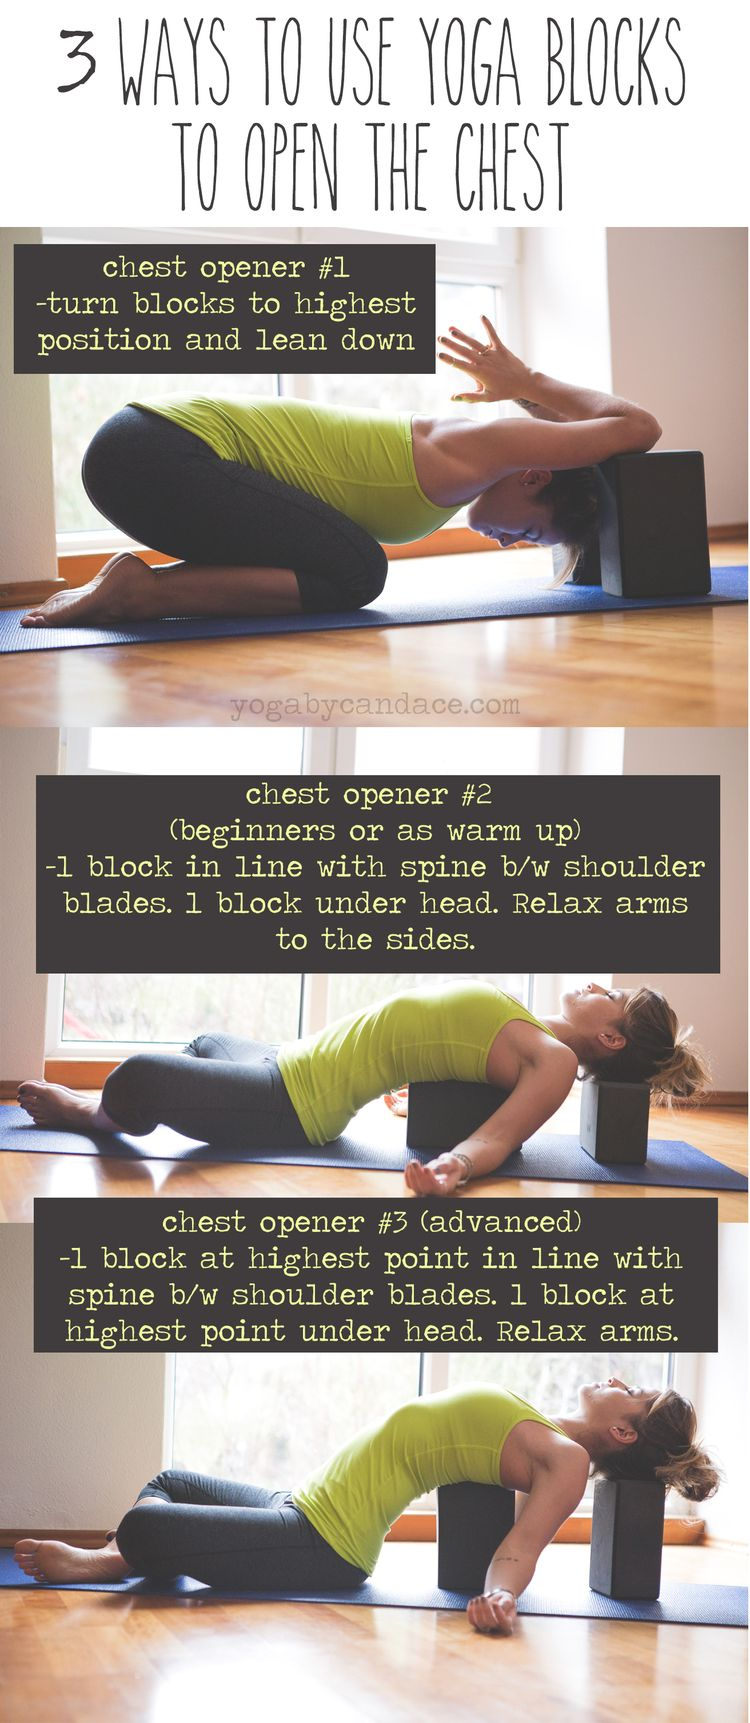 3 Ways to Use Yoga Blocks to Open the Chest  4da29adf03eed